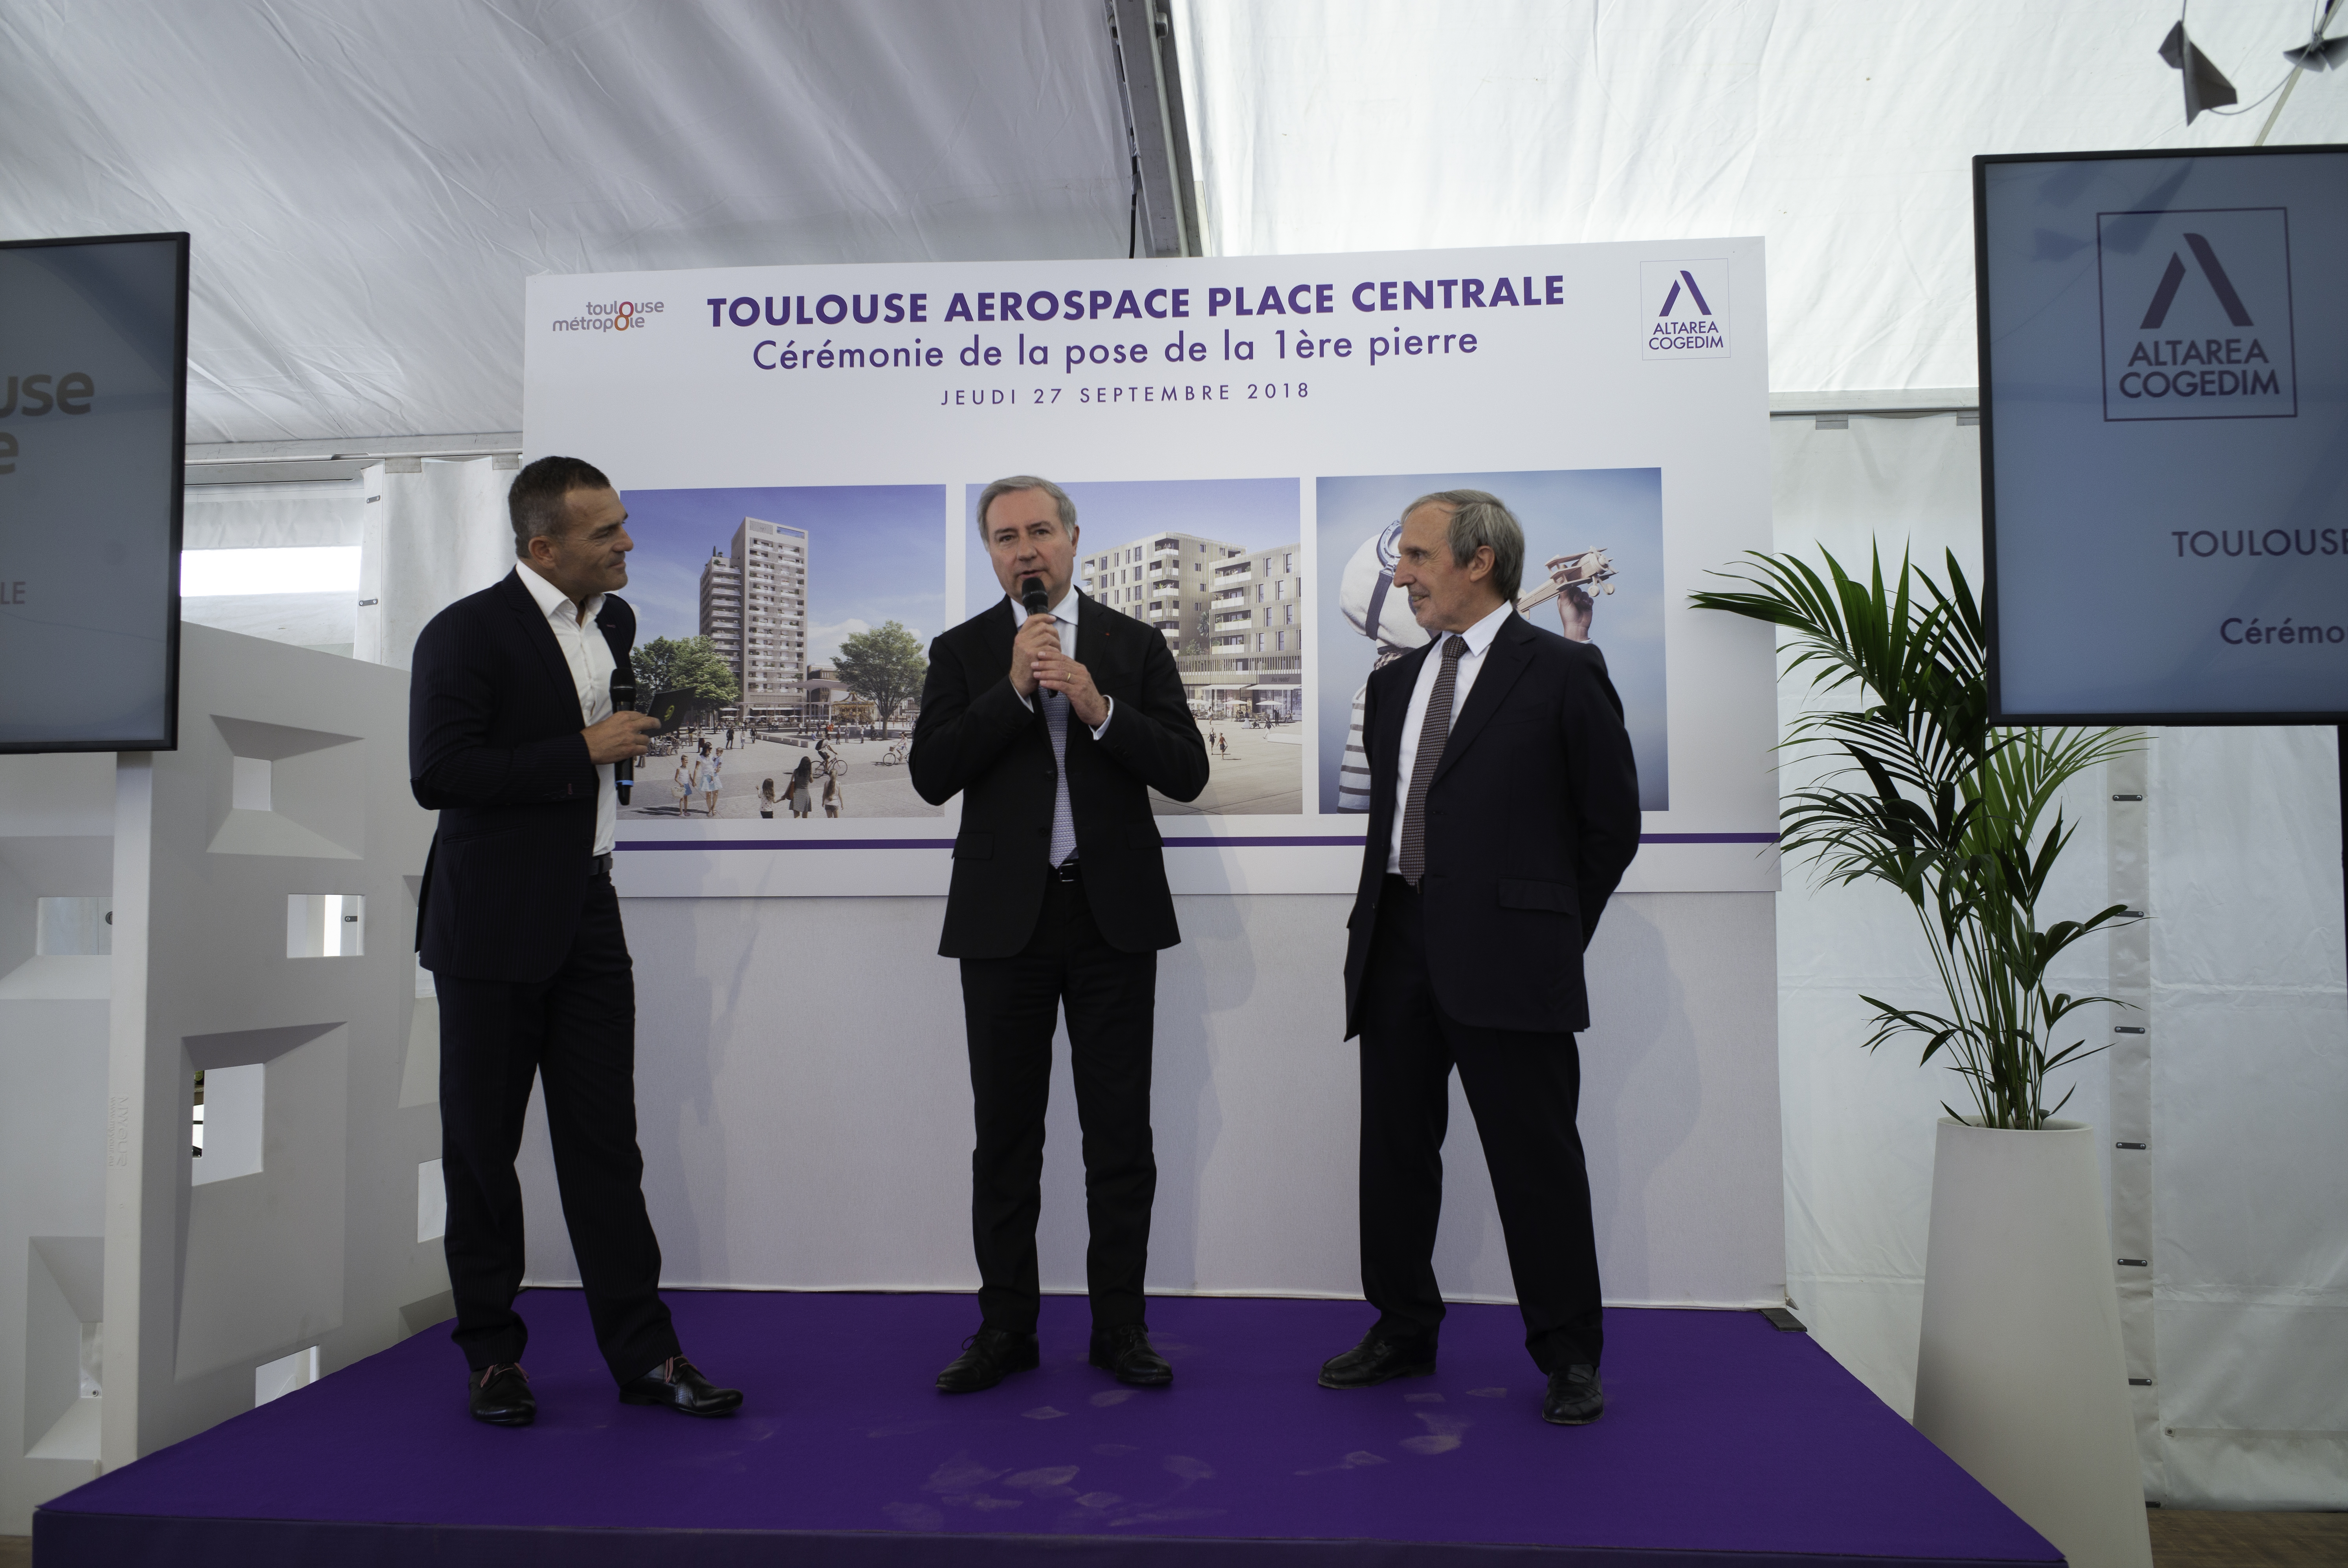 Pose%201e%20pierre%20logements%20Altarea%20Cogedim%20-%20Toulouse%20Aerospace%202